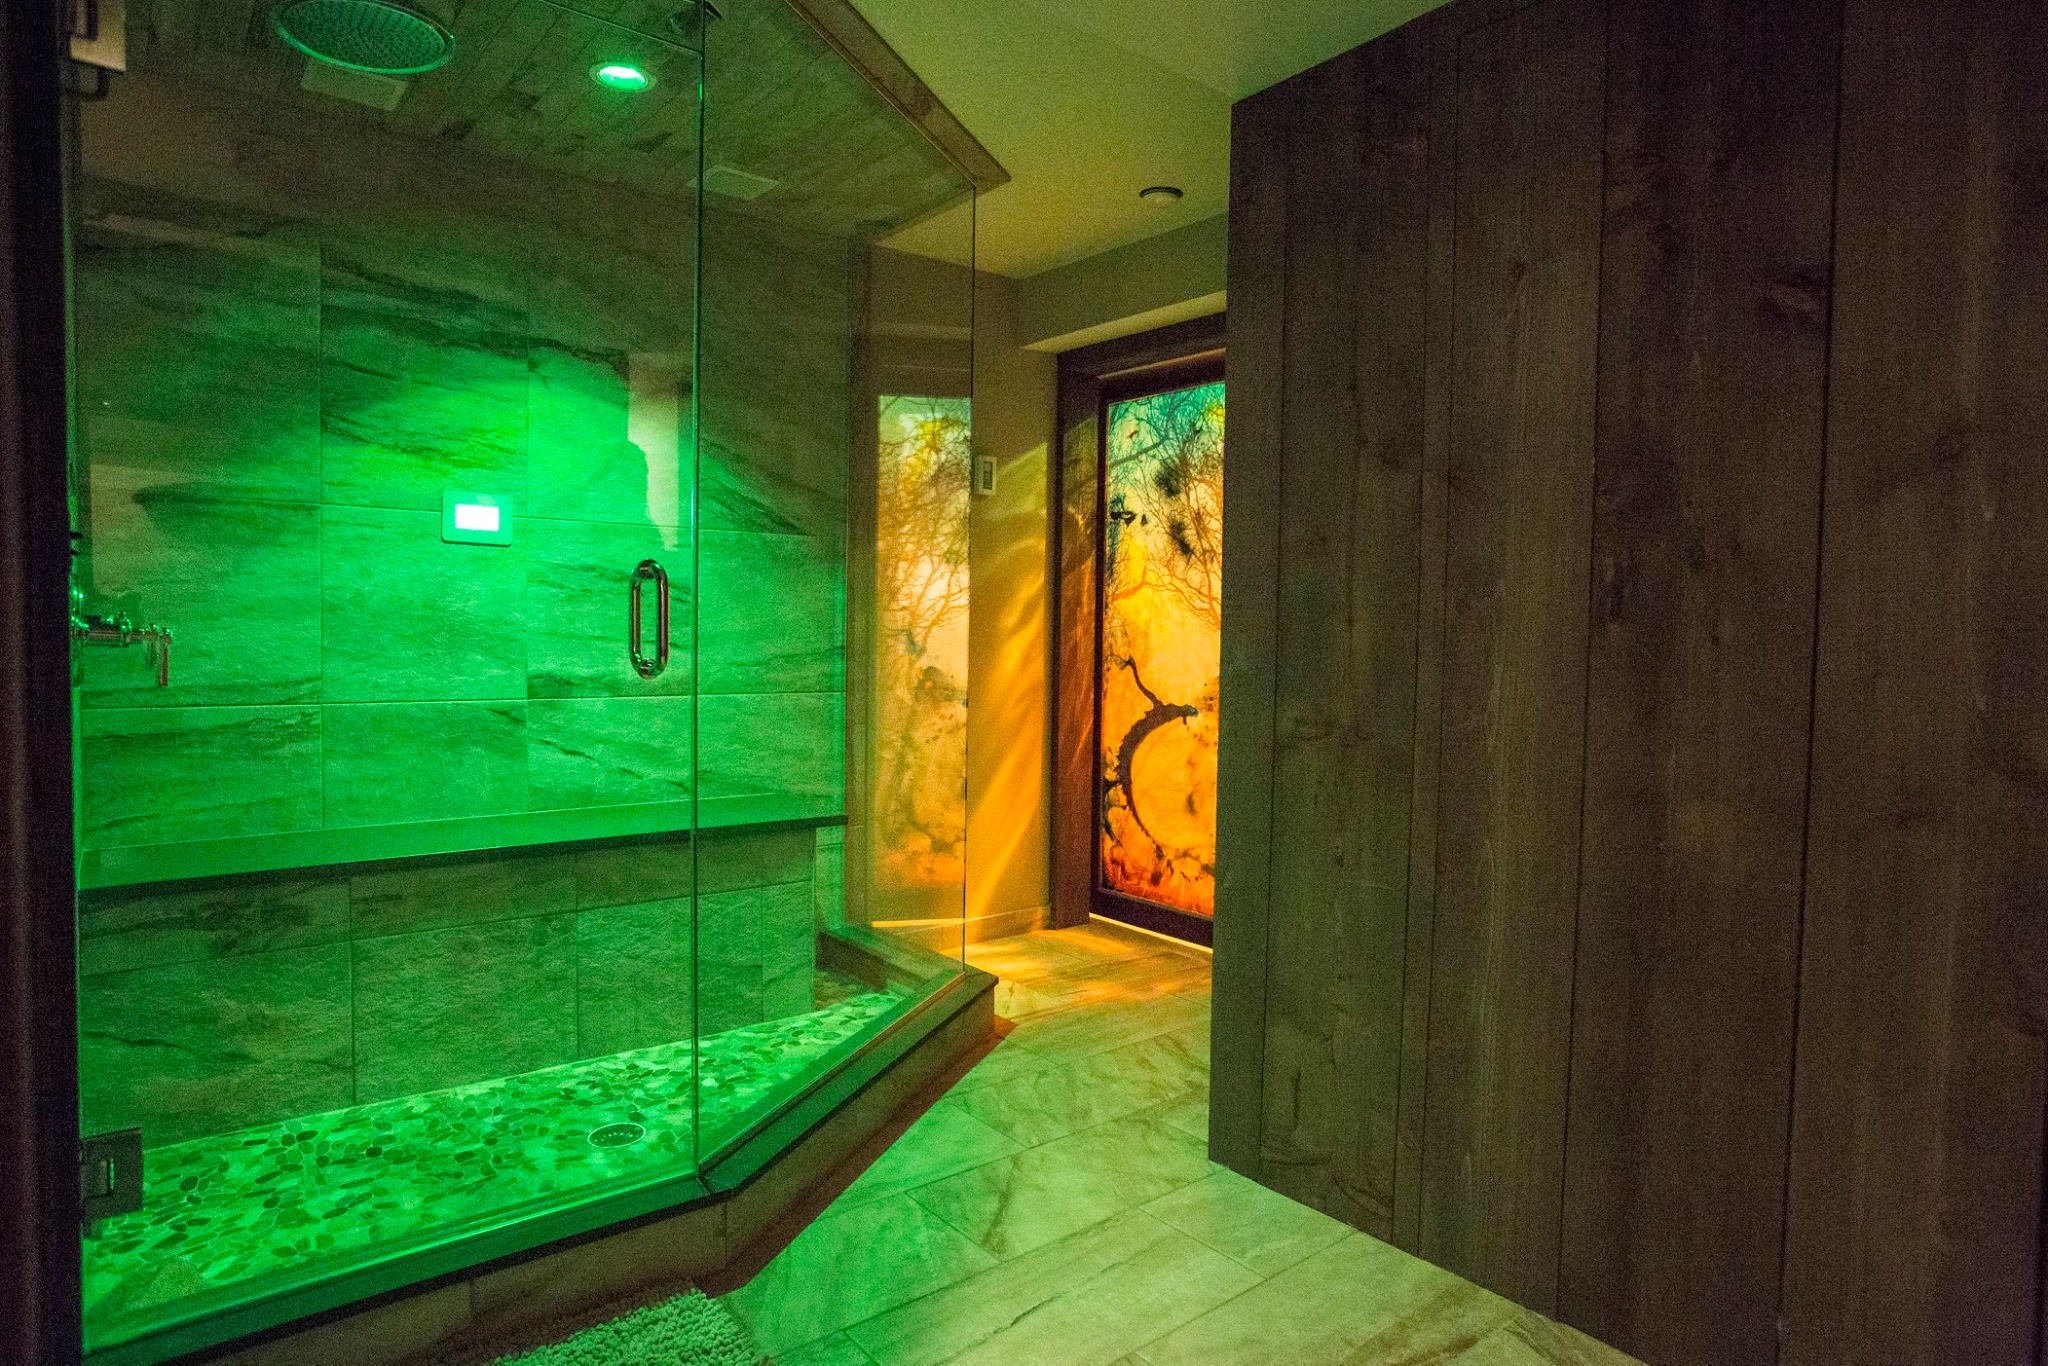 Bring color into your personal spa experience with green ChromaSteam®.